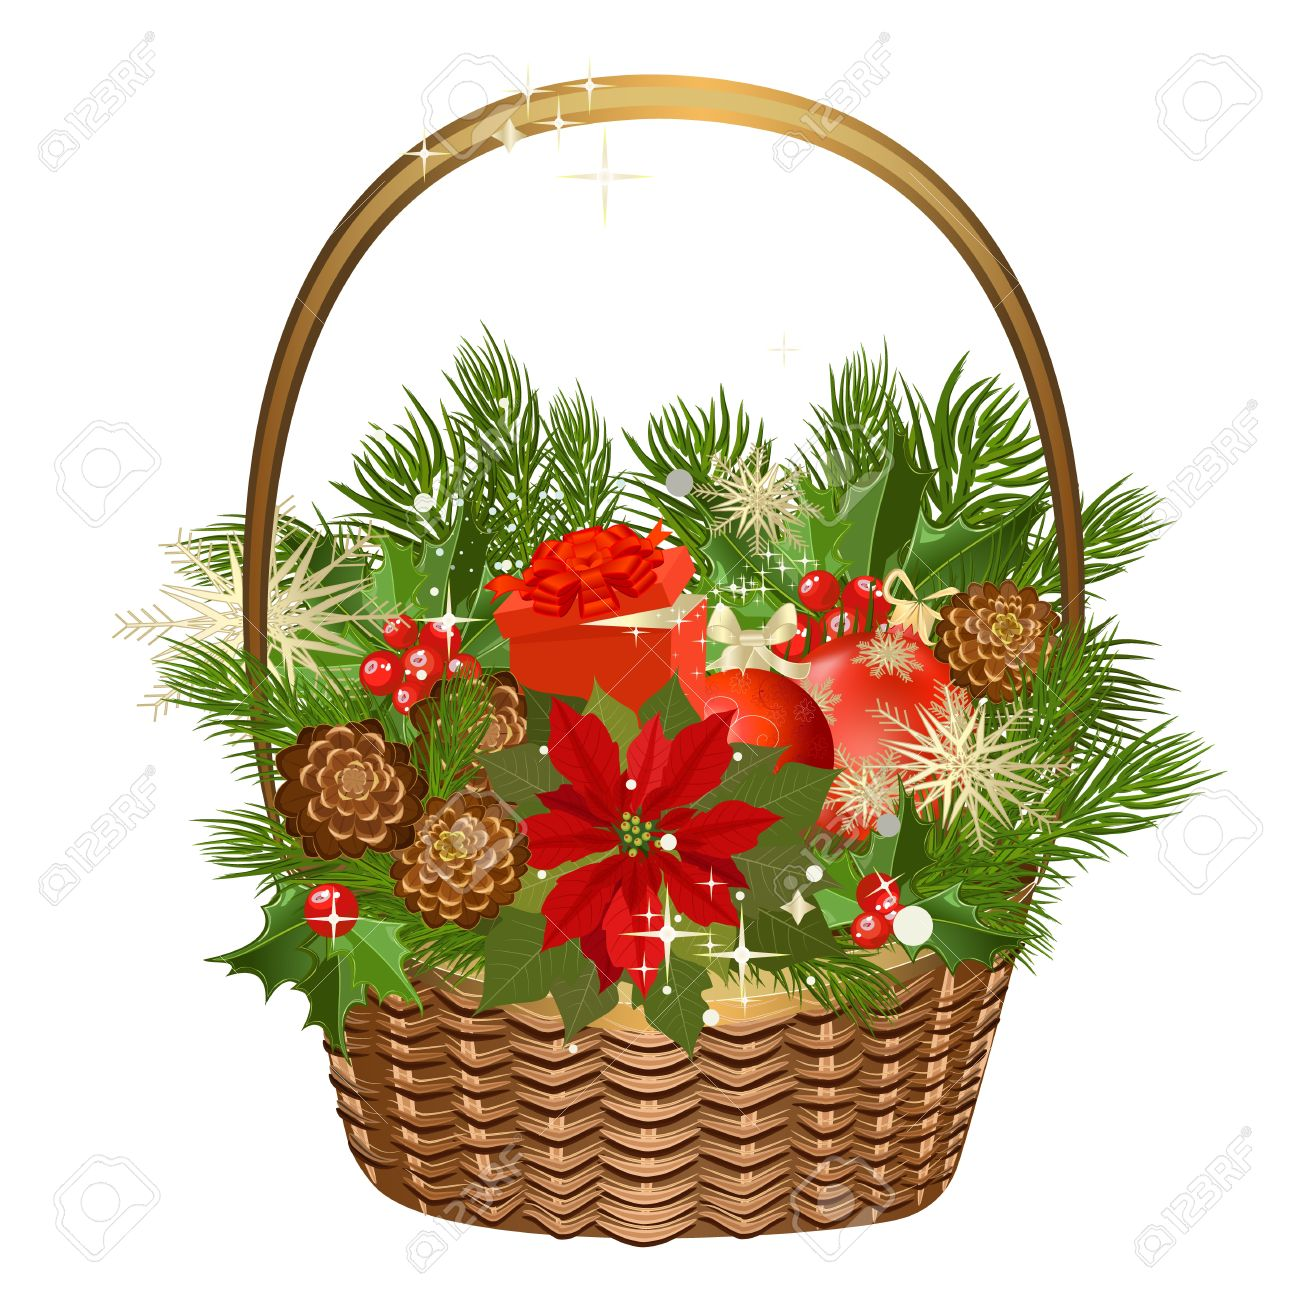 Gift basket with flowers and Christmas toys Stock Vector - 11419777